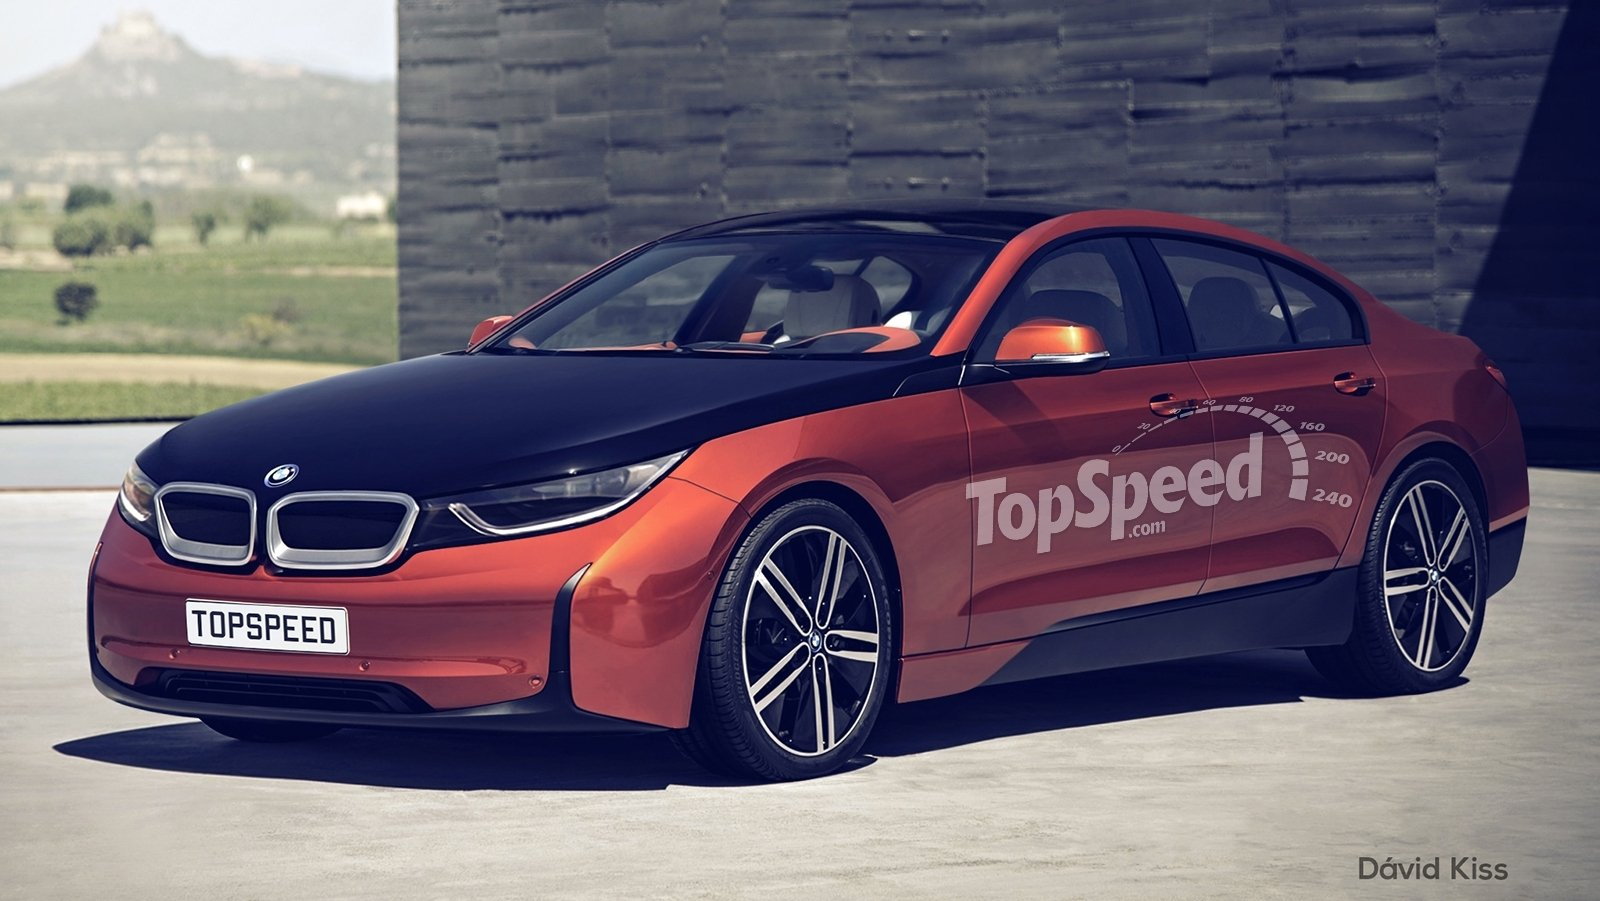 Sport Series bmw m4 top speed BMW » 2015 Bmw M4 Top Speed - 19s-20s Car and Autos, All Makes All ...